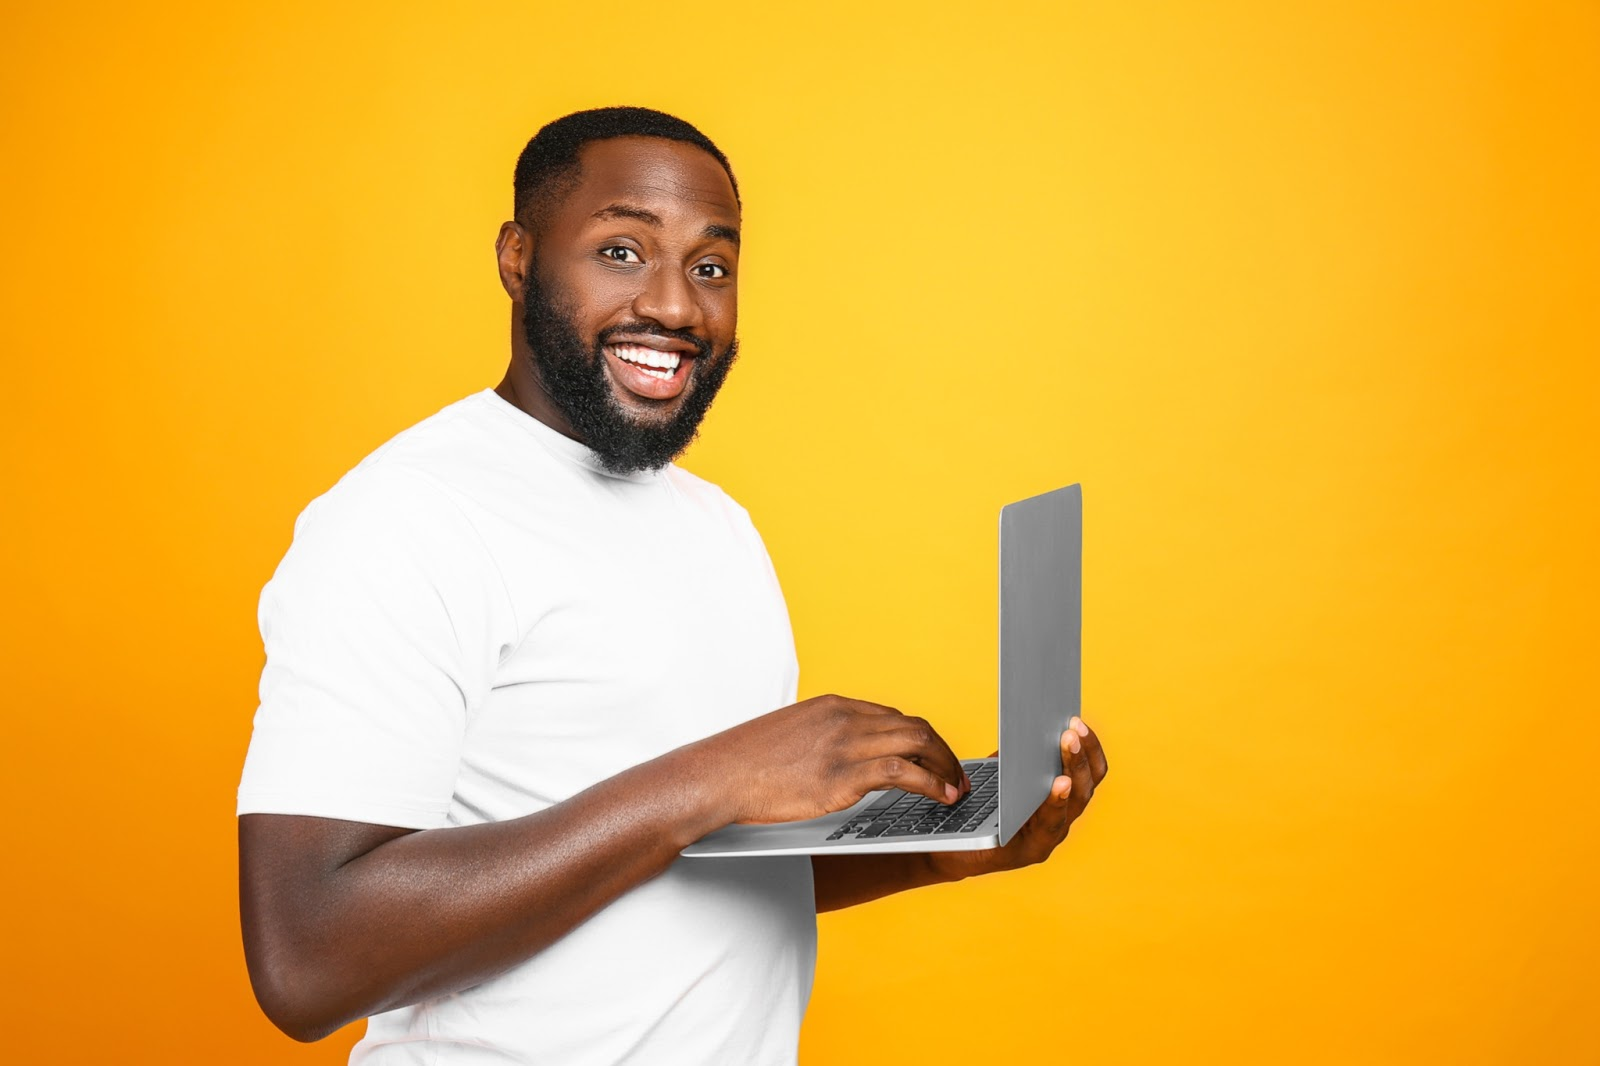 A smiling man works on a laptop